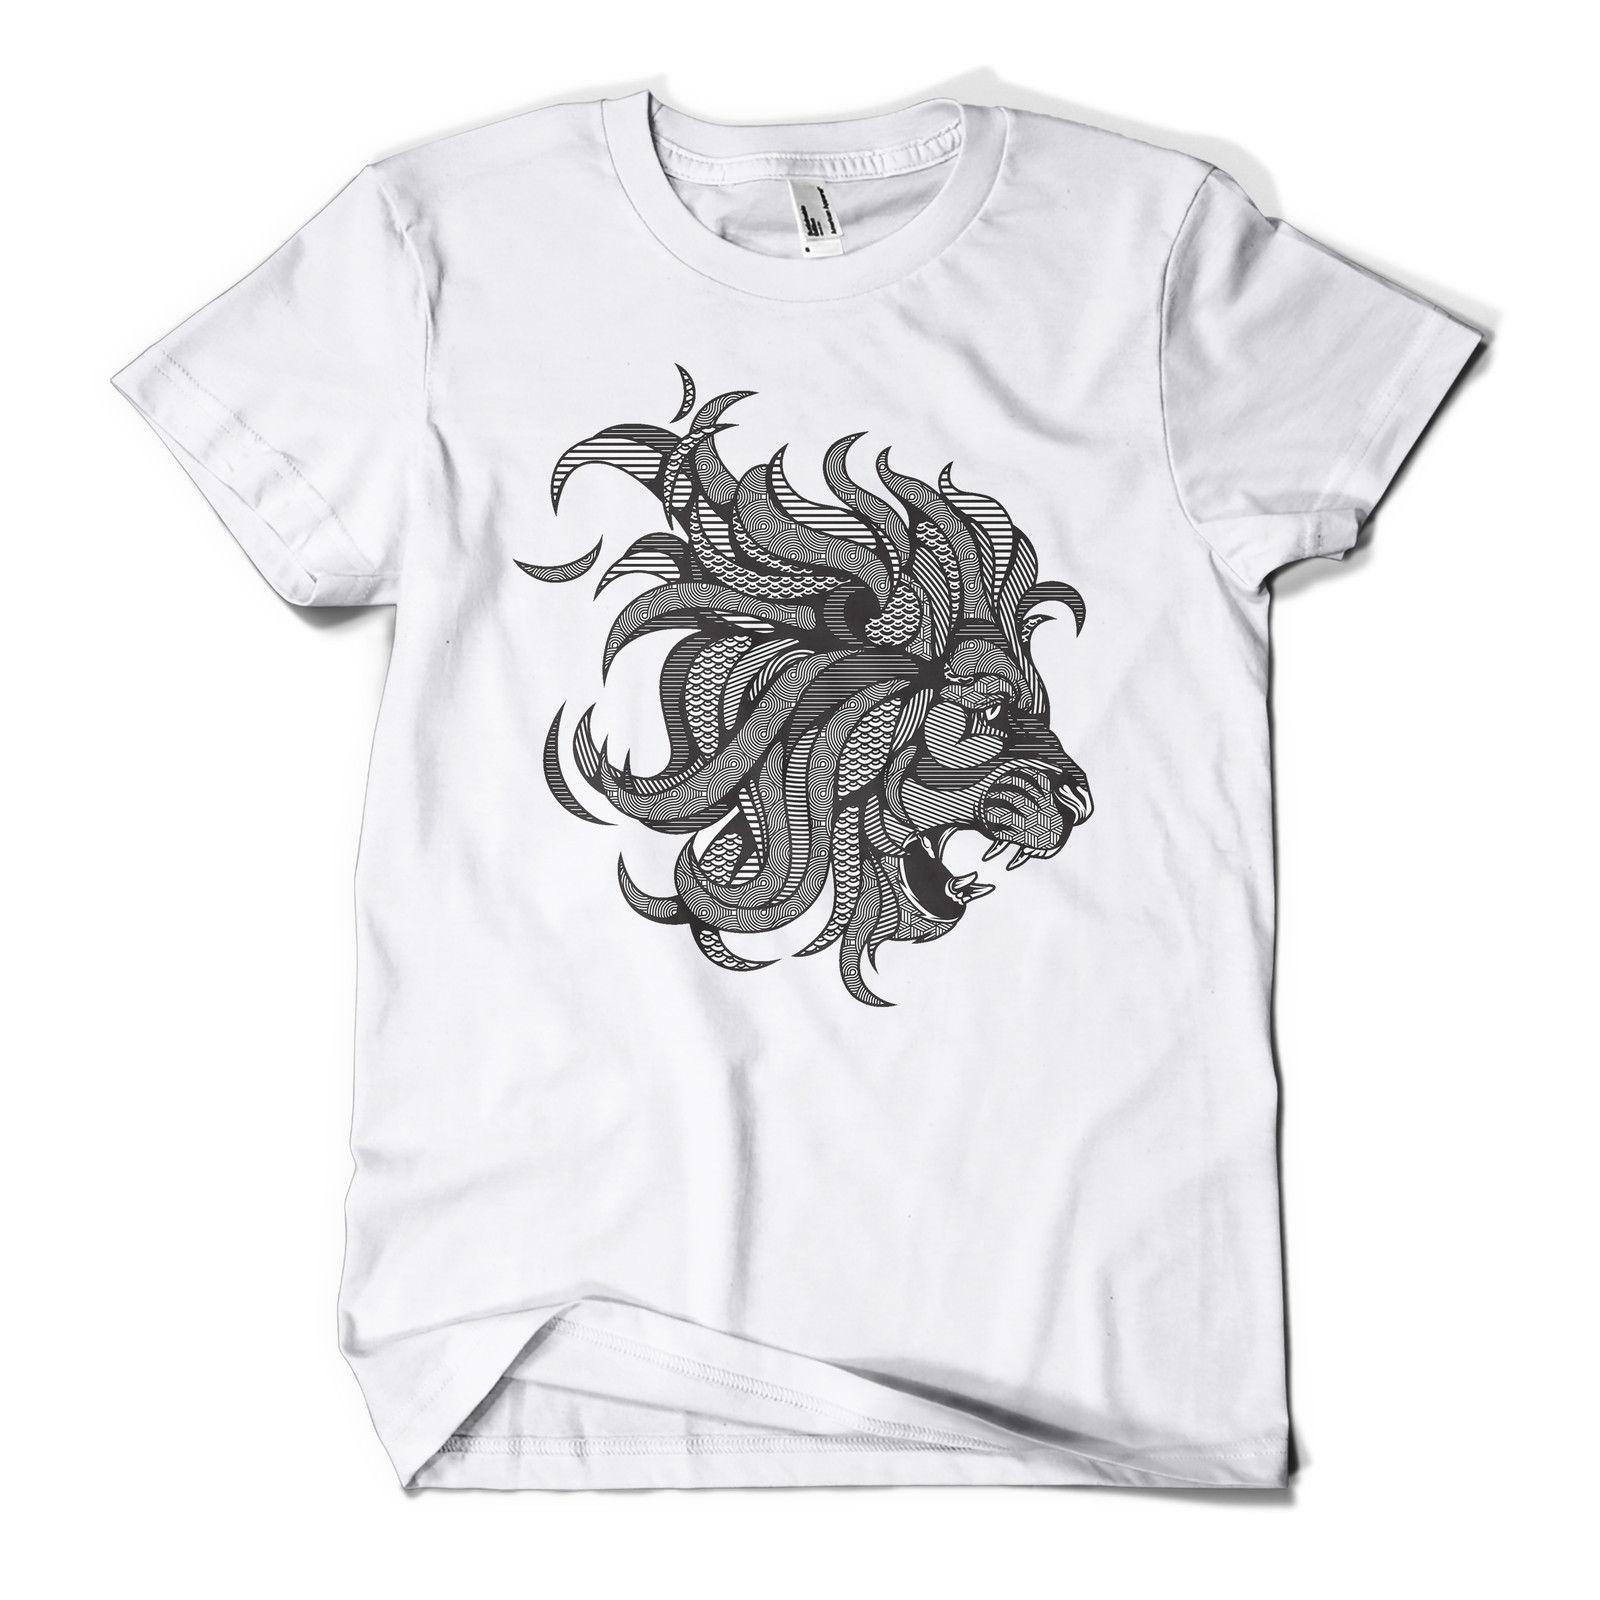 1fc955eda Graphic Lion Printed T Shirt Hipster Design Urban Fashion Mens Girls Tee  Top 2018 Summer 100% Cotton Short Sleeve Funny O Neck T Shirt Be T Shirts  Awesome ...